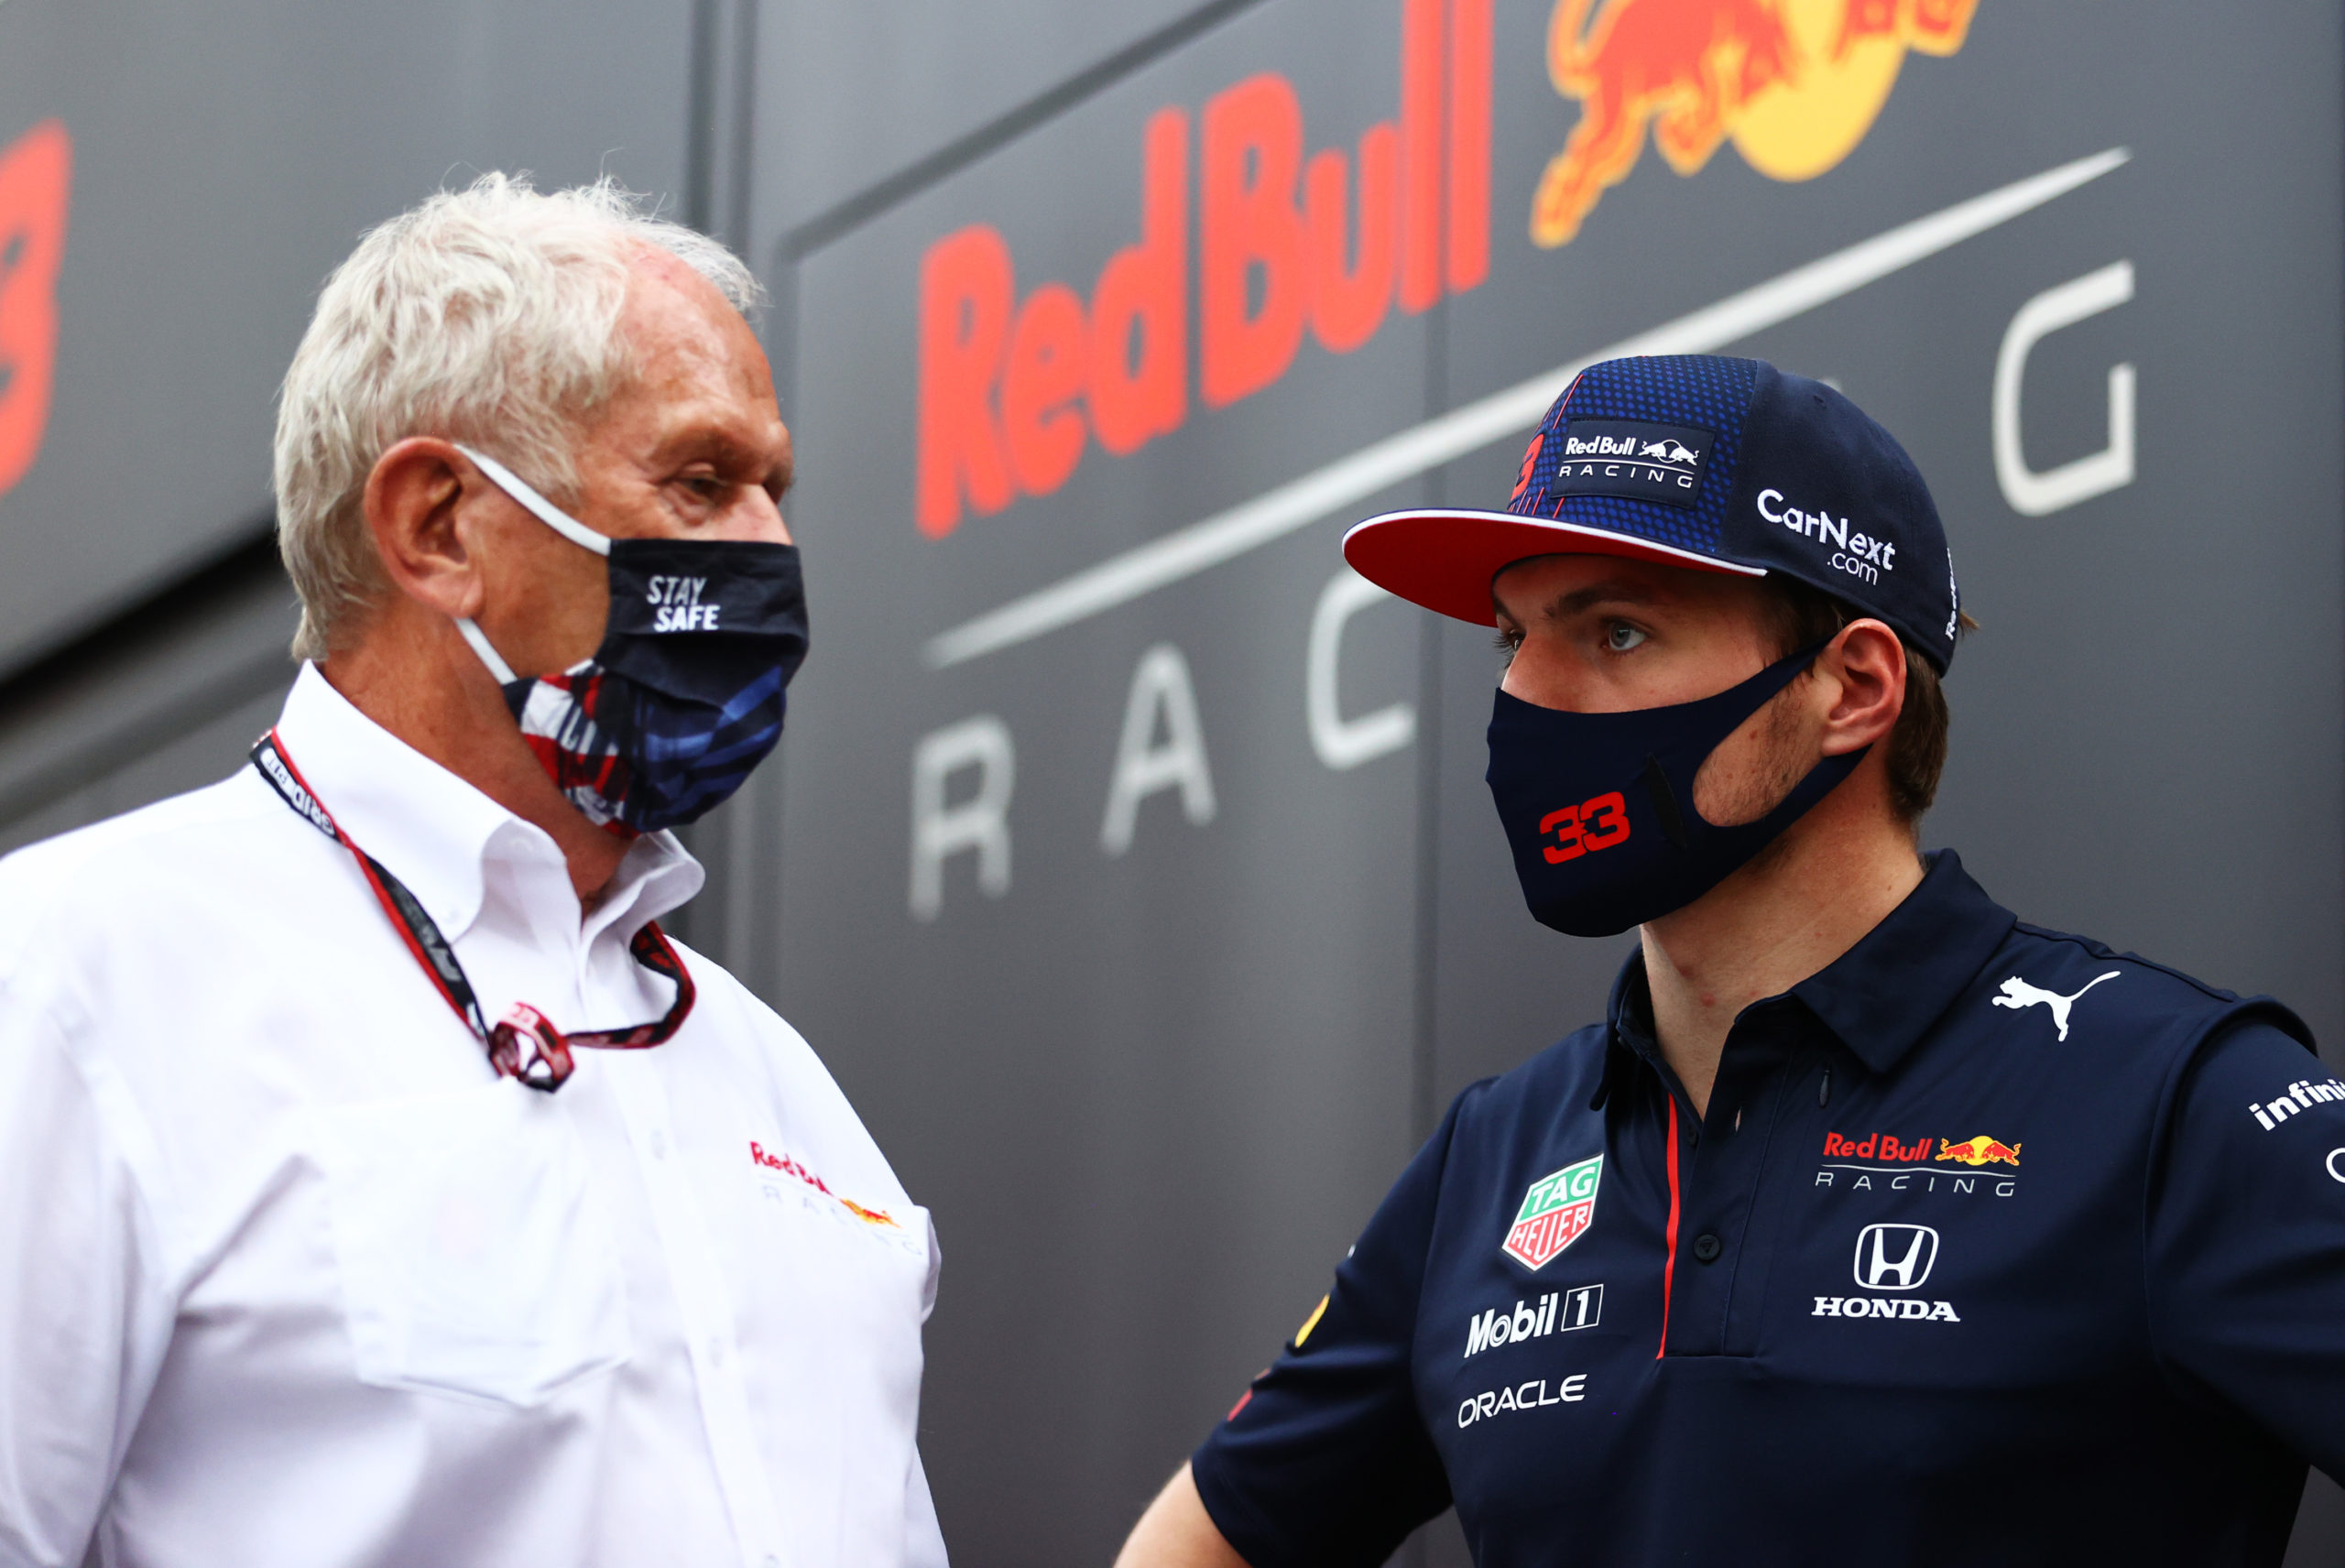 MONZA, ITALY - SEPTEMBER 10: Max Verstappen of Netherlands and Red Bull Racing talks with Red Bull Racing Team Consultant Dr Helmut Marko in the Paddock after qualifying ahead of the F1 Grand Prix of Italy at Autodromo di Monza on September 10, 2021 in Monza, Italy. (Photo by Bryn Lennon/Getty Images) // Getty Images / Red Bull Content Pool  // SI202109100644 // Usage for editorial use only //